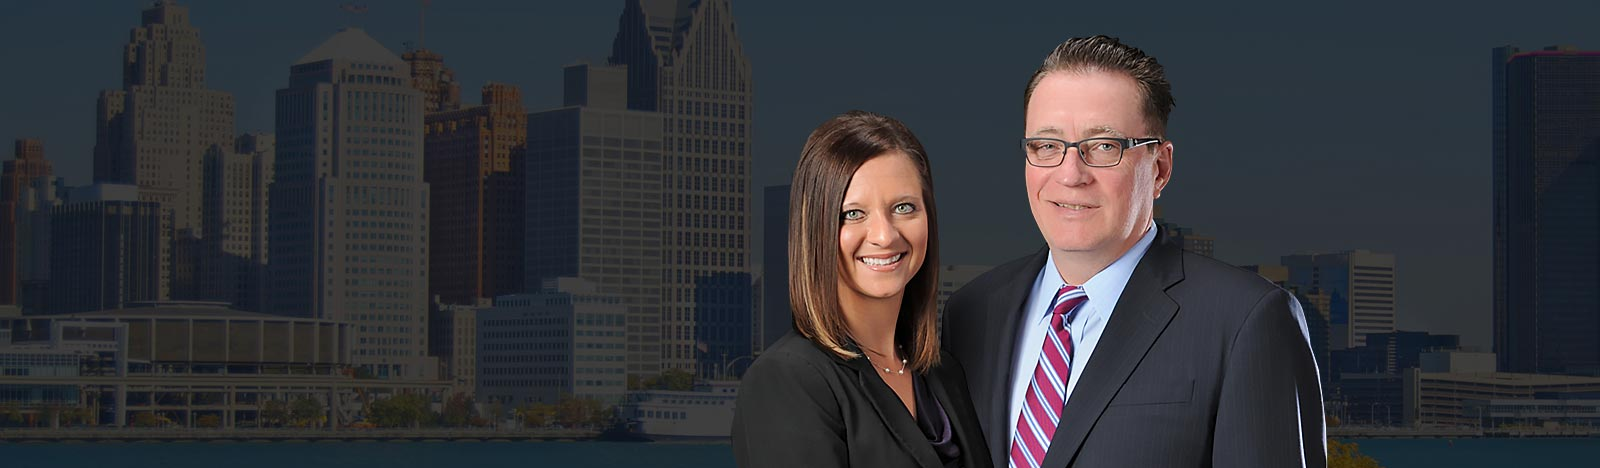 J.B. Biekse & Jennifer Alfonsi, Attorneys at Law